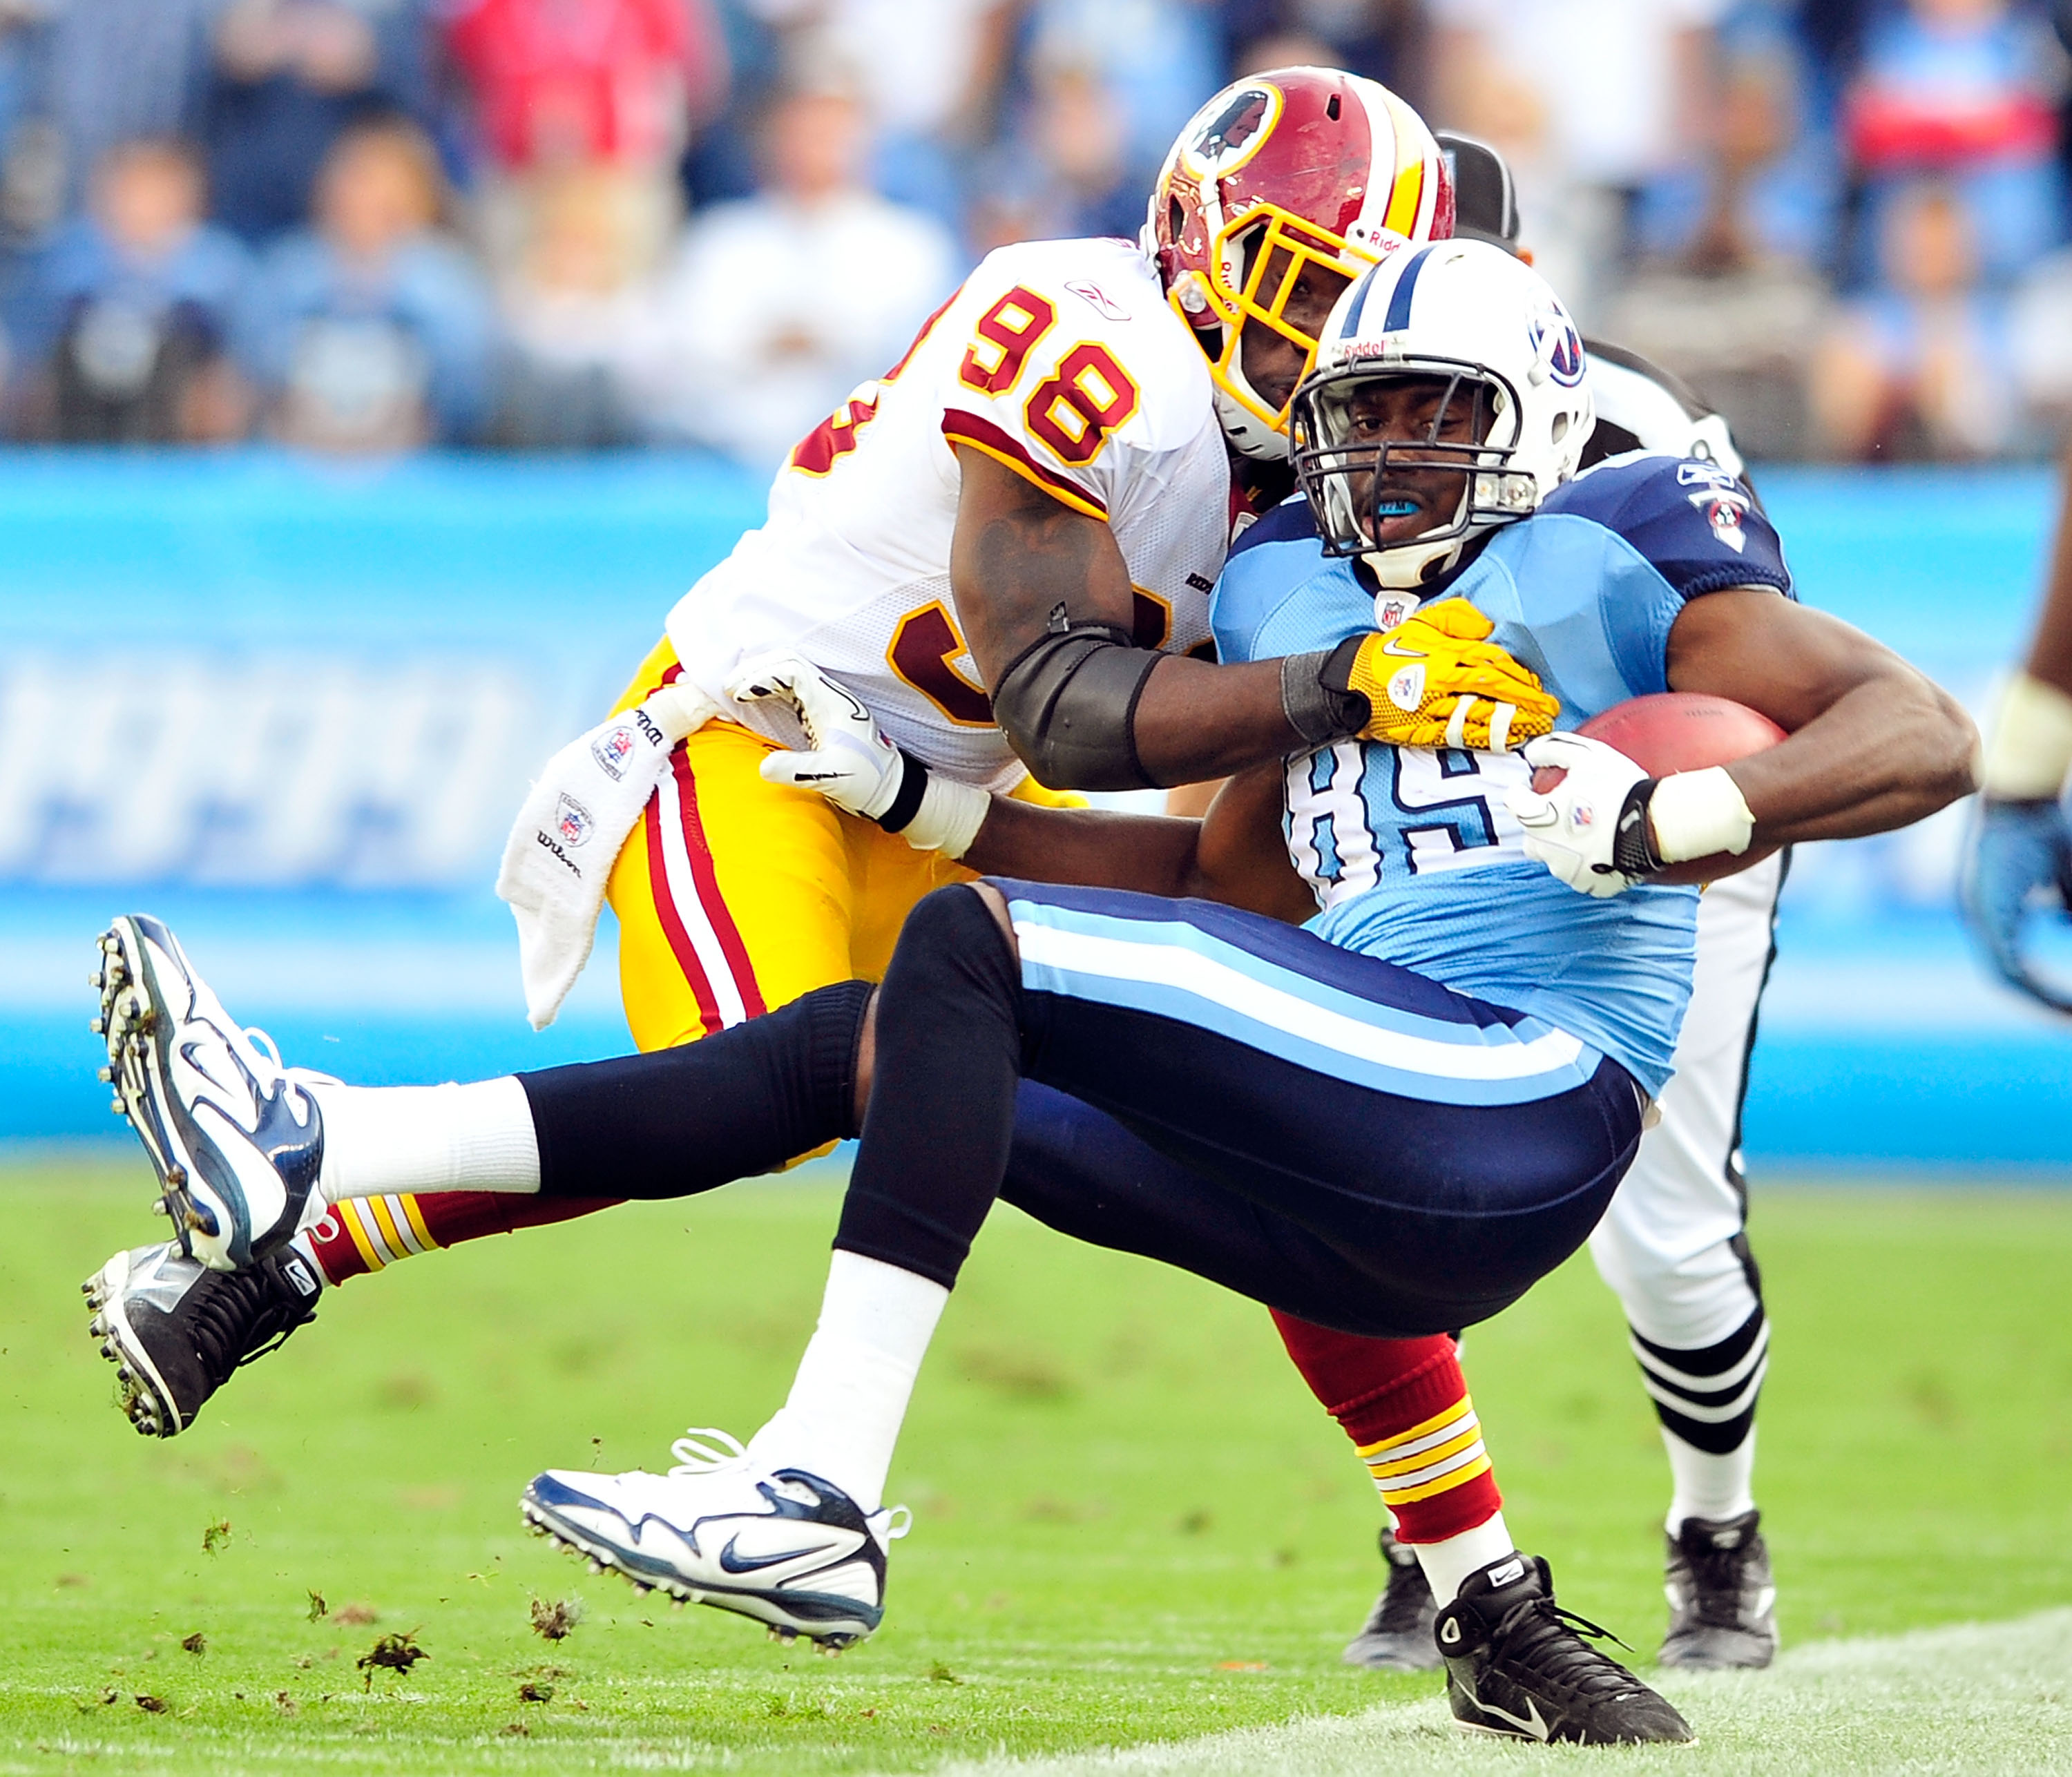 NASHVILLE, TN - NOVEMBER 21:  Brian Orakpo #98 of the Washington Redskins forces Jared Cook #89 of the Tennessee Titans out-of-bounds at LP Field on November 21, 2010 in Nashville, Tennessee. The Redskins won 19-16 in overtime.  (Photo by Grant Halverson/